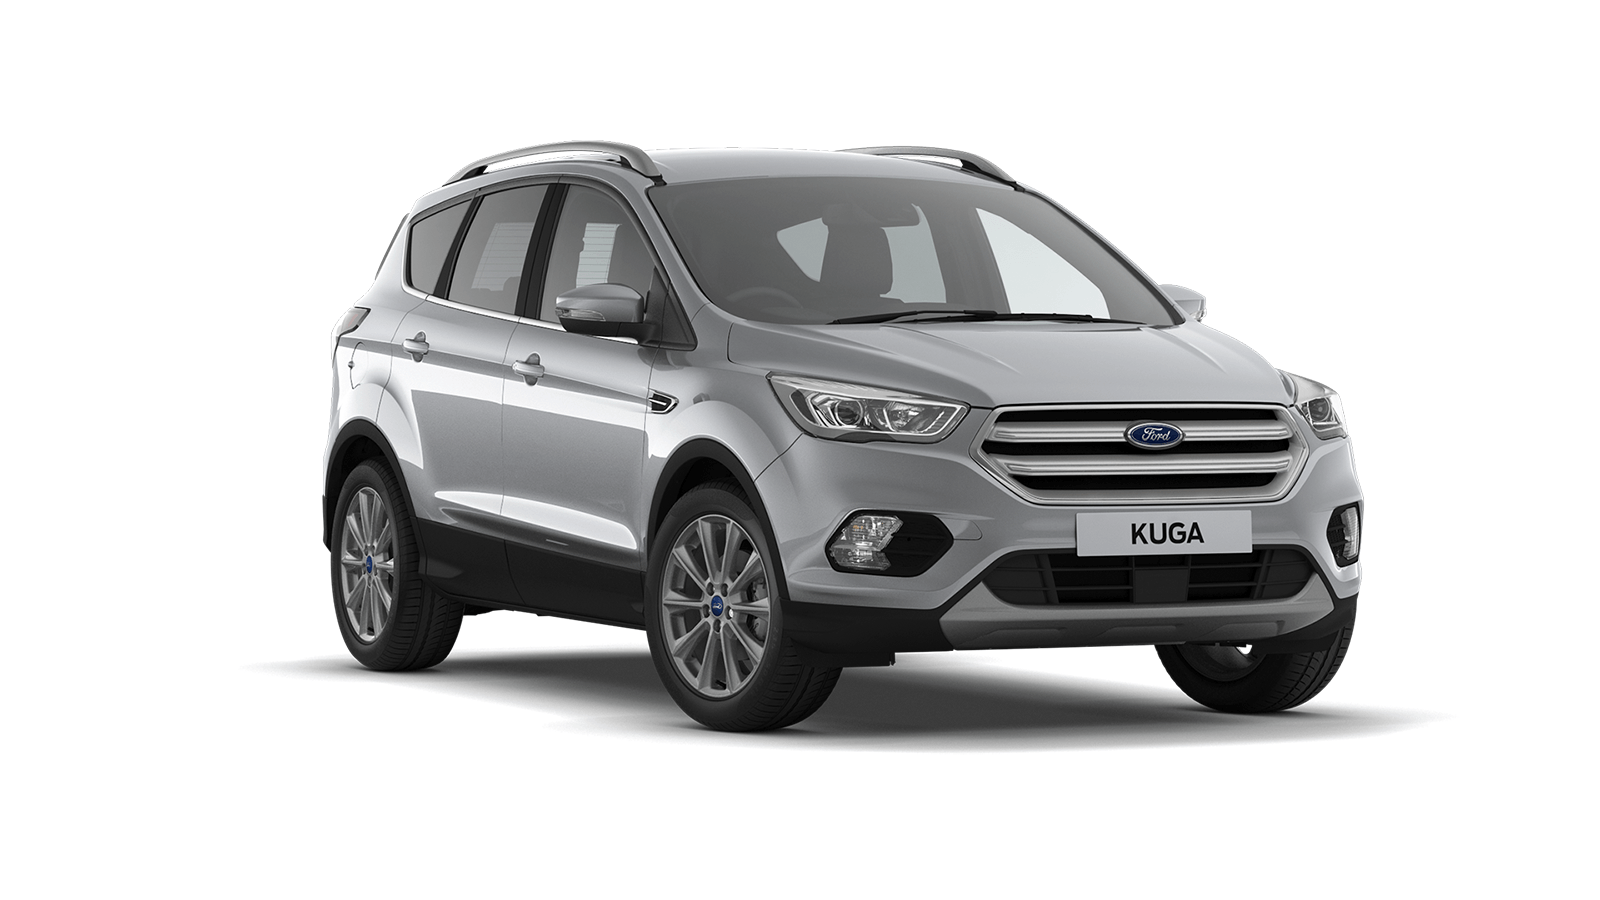 https://www.dealerinternet.co.uk/images/KUGA/2019.25/5%20Door/TitaniumEdition/MOONDUST-SILVER.png